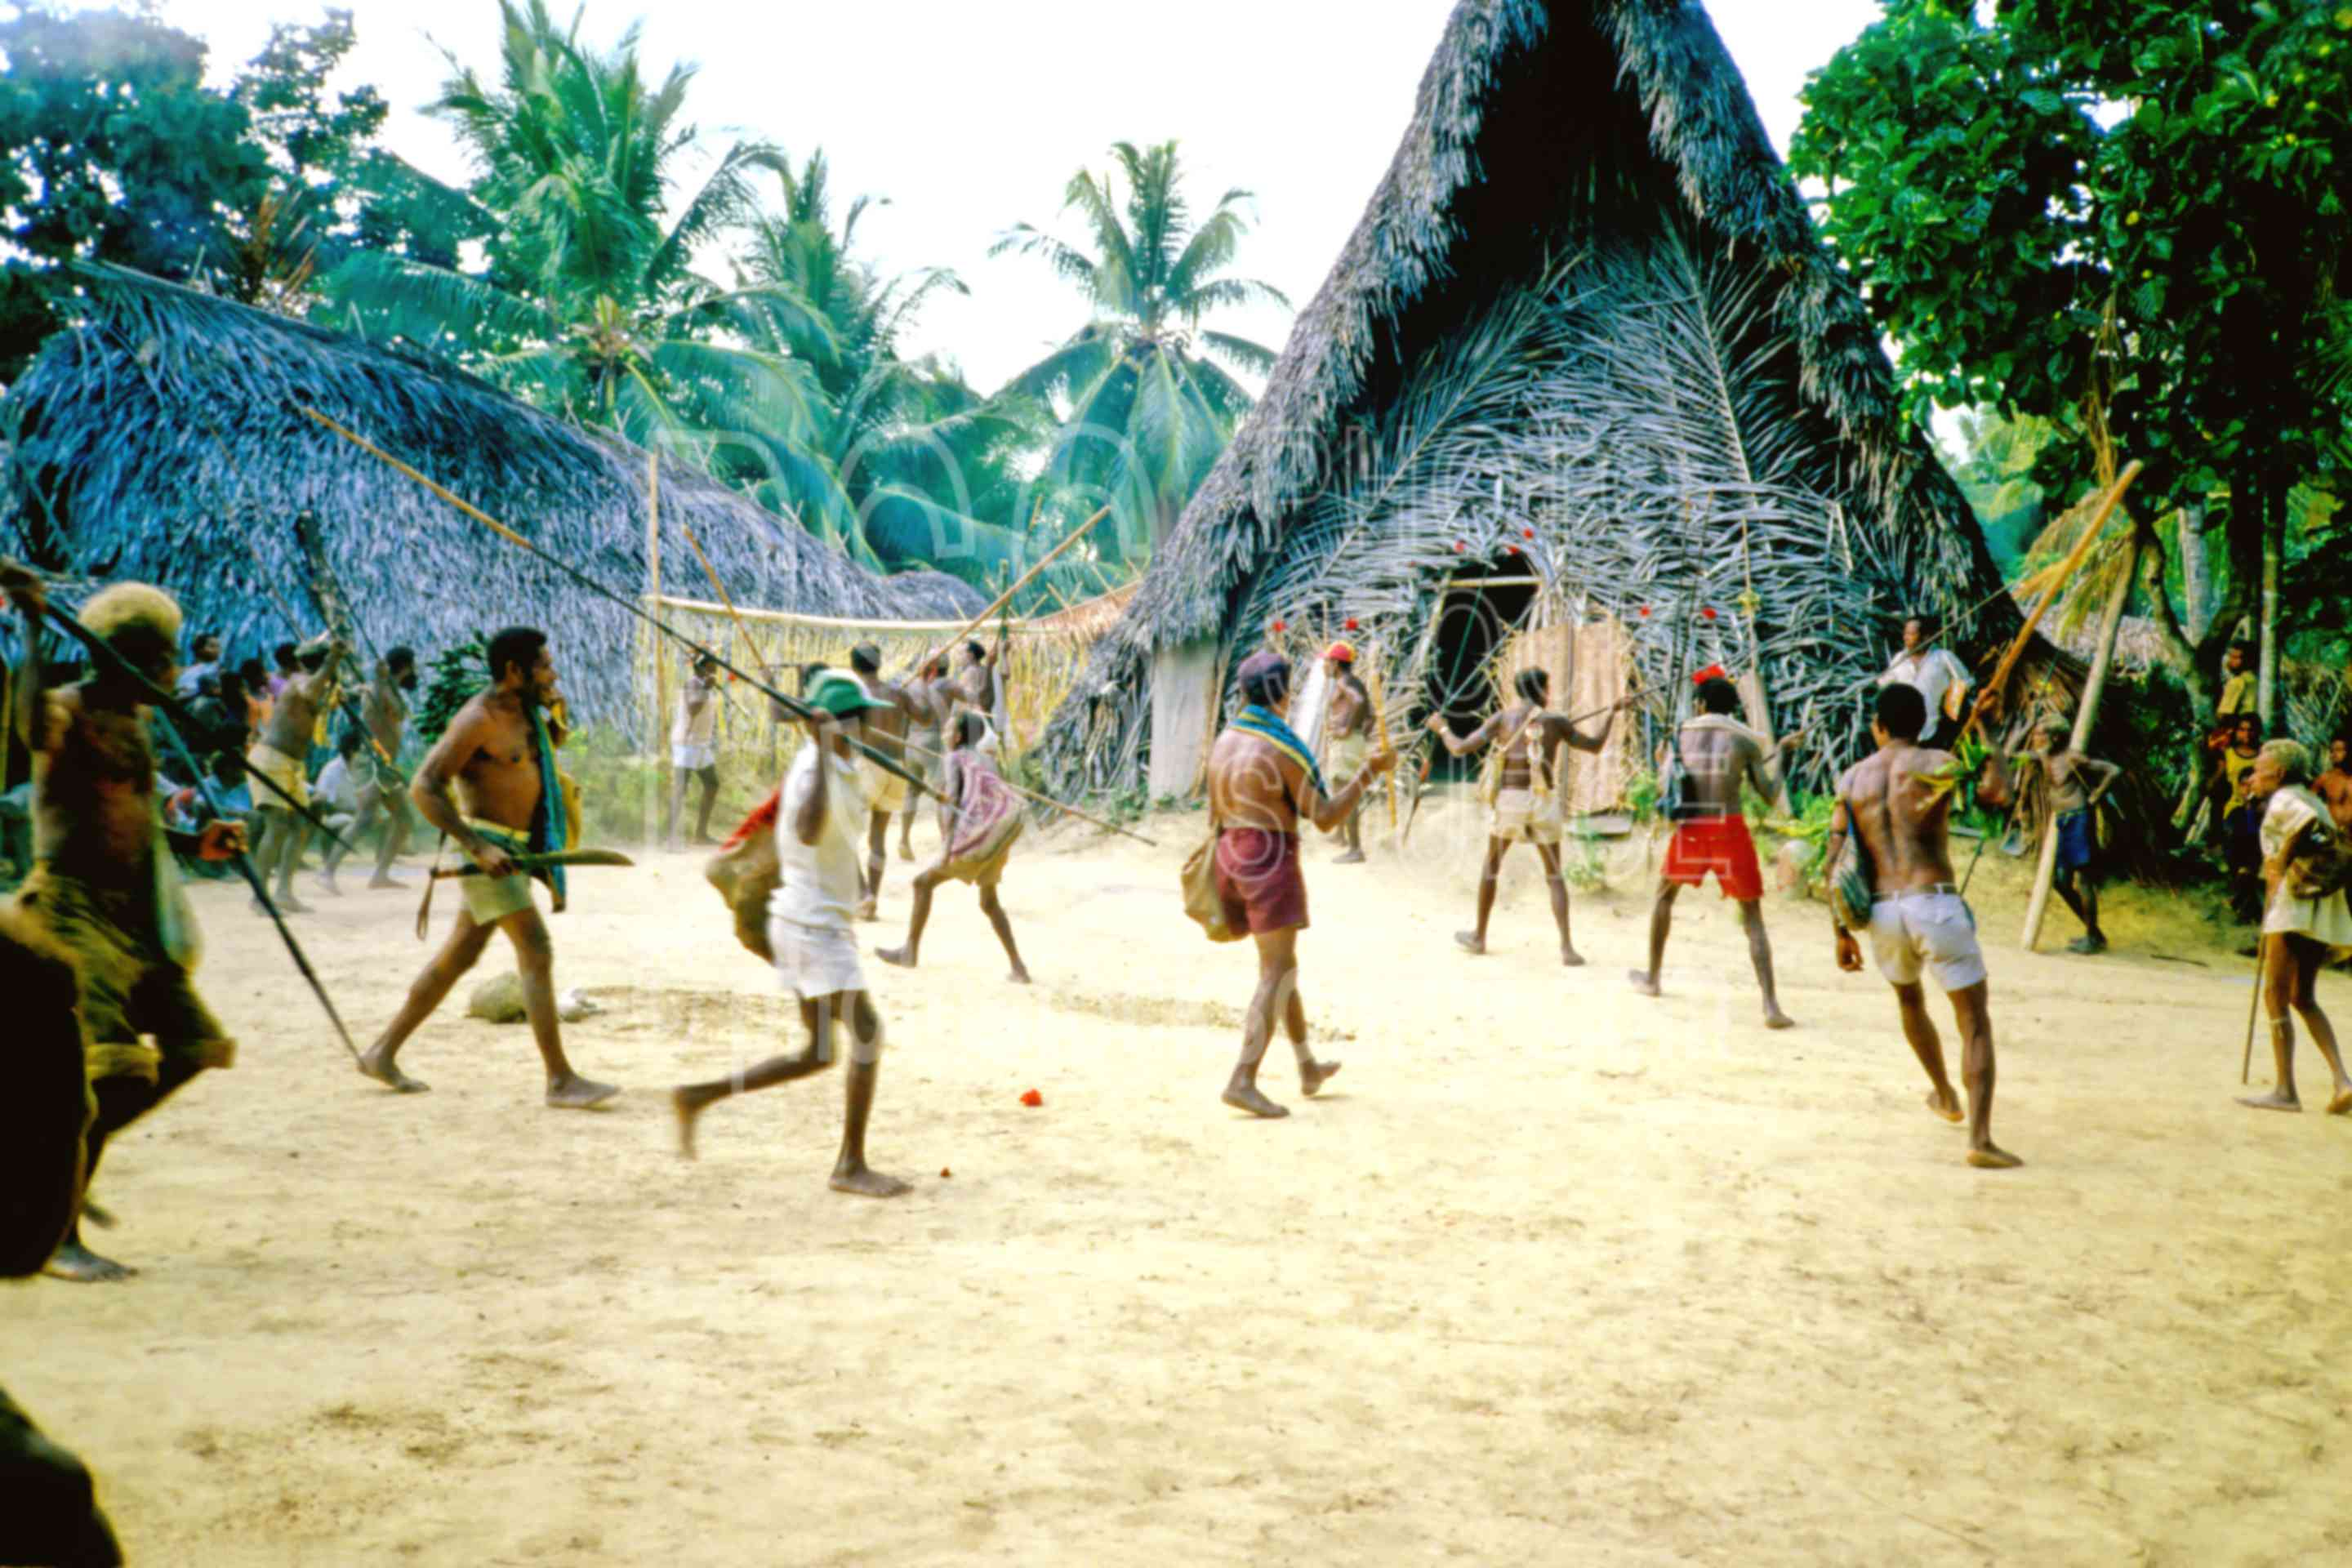 Yam Ceremony Dancers,ceremony,dance,dancing,gathering,mens,yams,PNG ceremonies